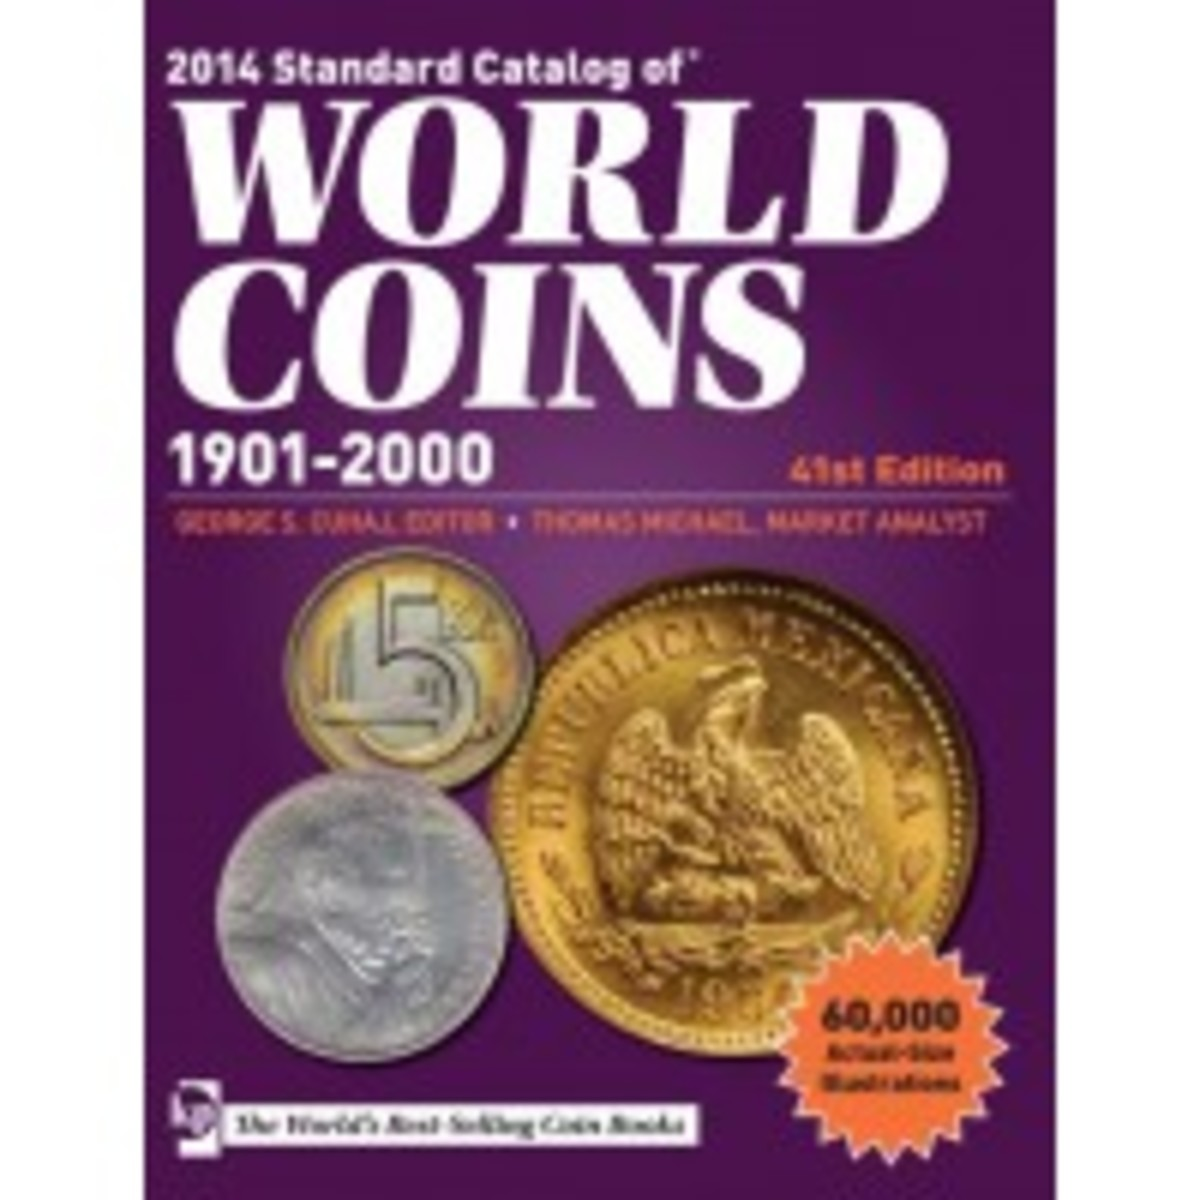 The Standard Catalog of World Coins, 1901-2000, offers invaluable information from identification to values. Order your copy today!